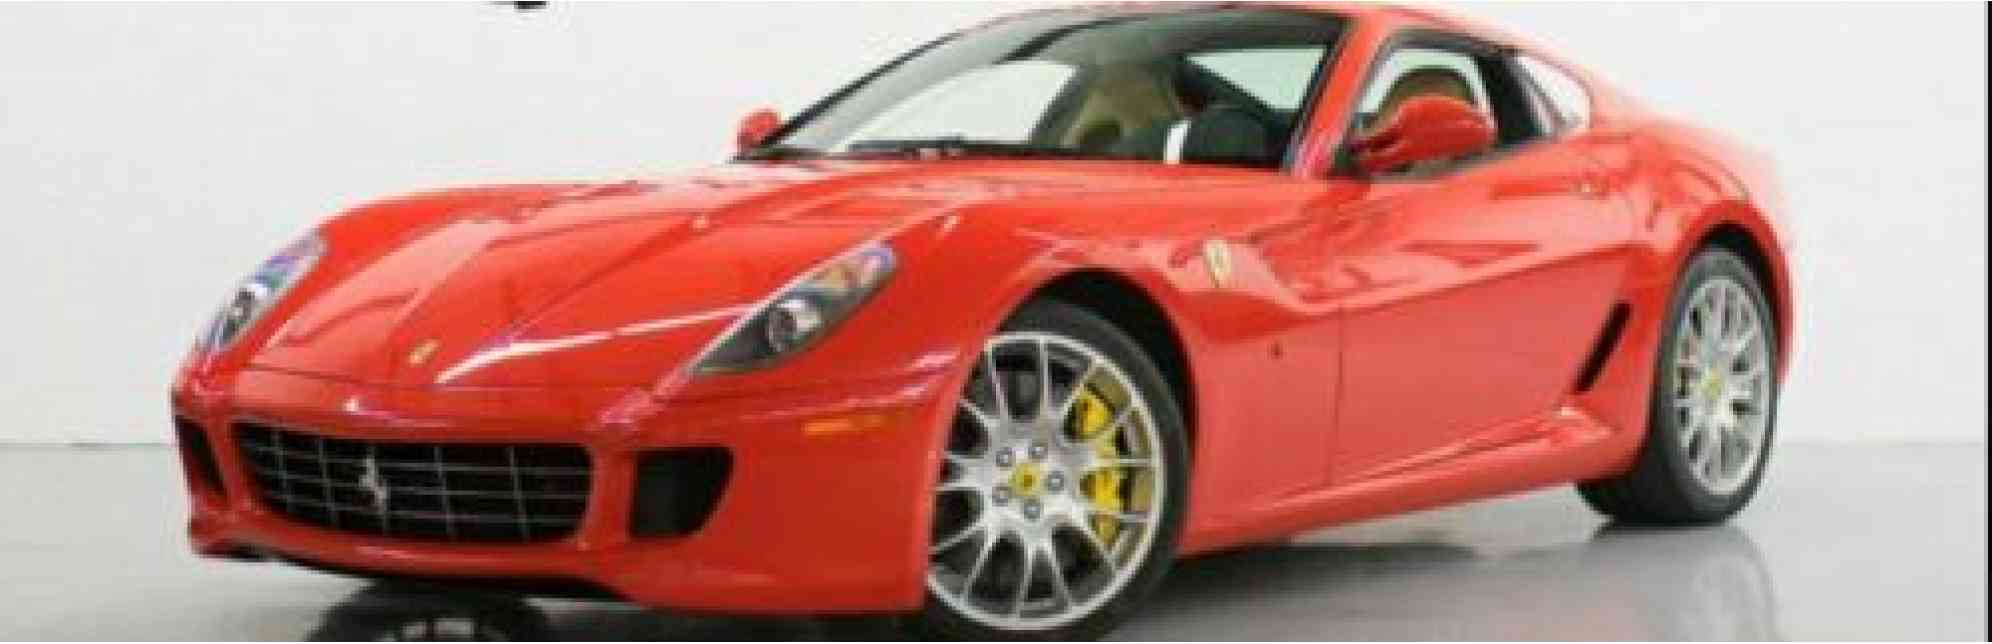 2009 Ferrari 599 2 Door Coupe